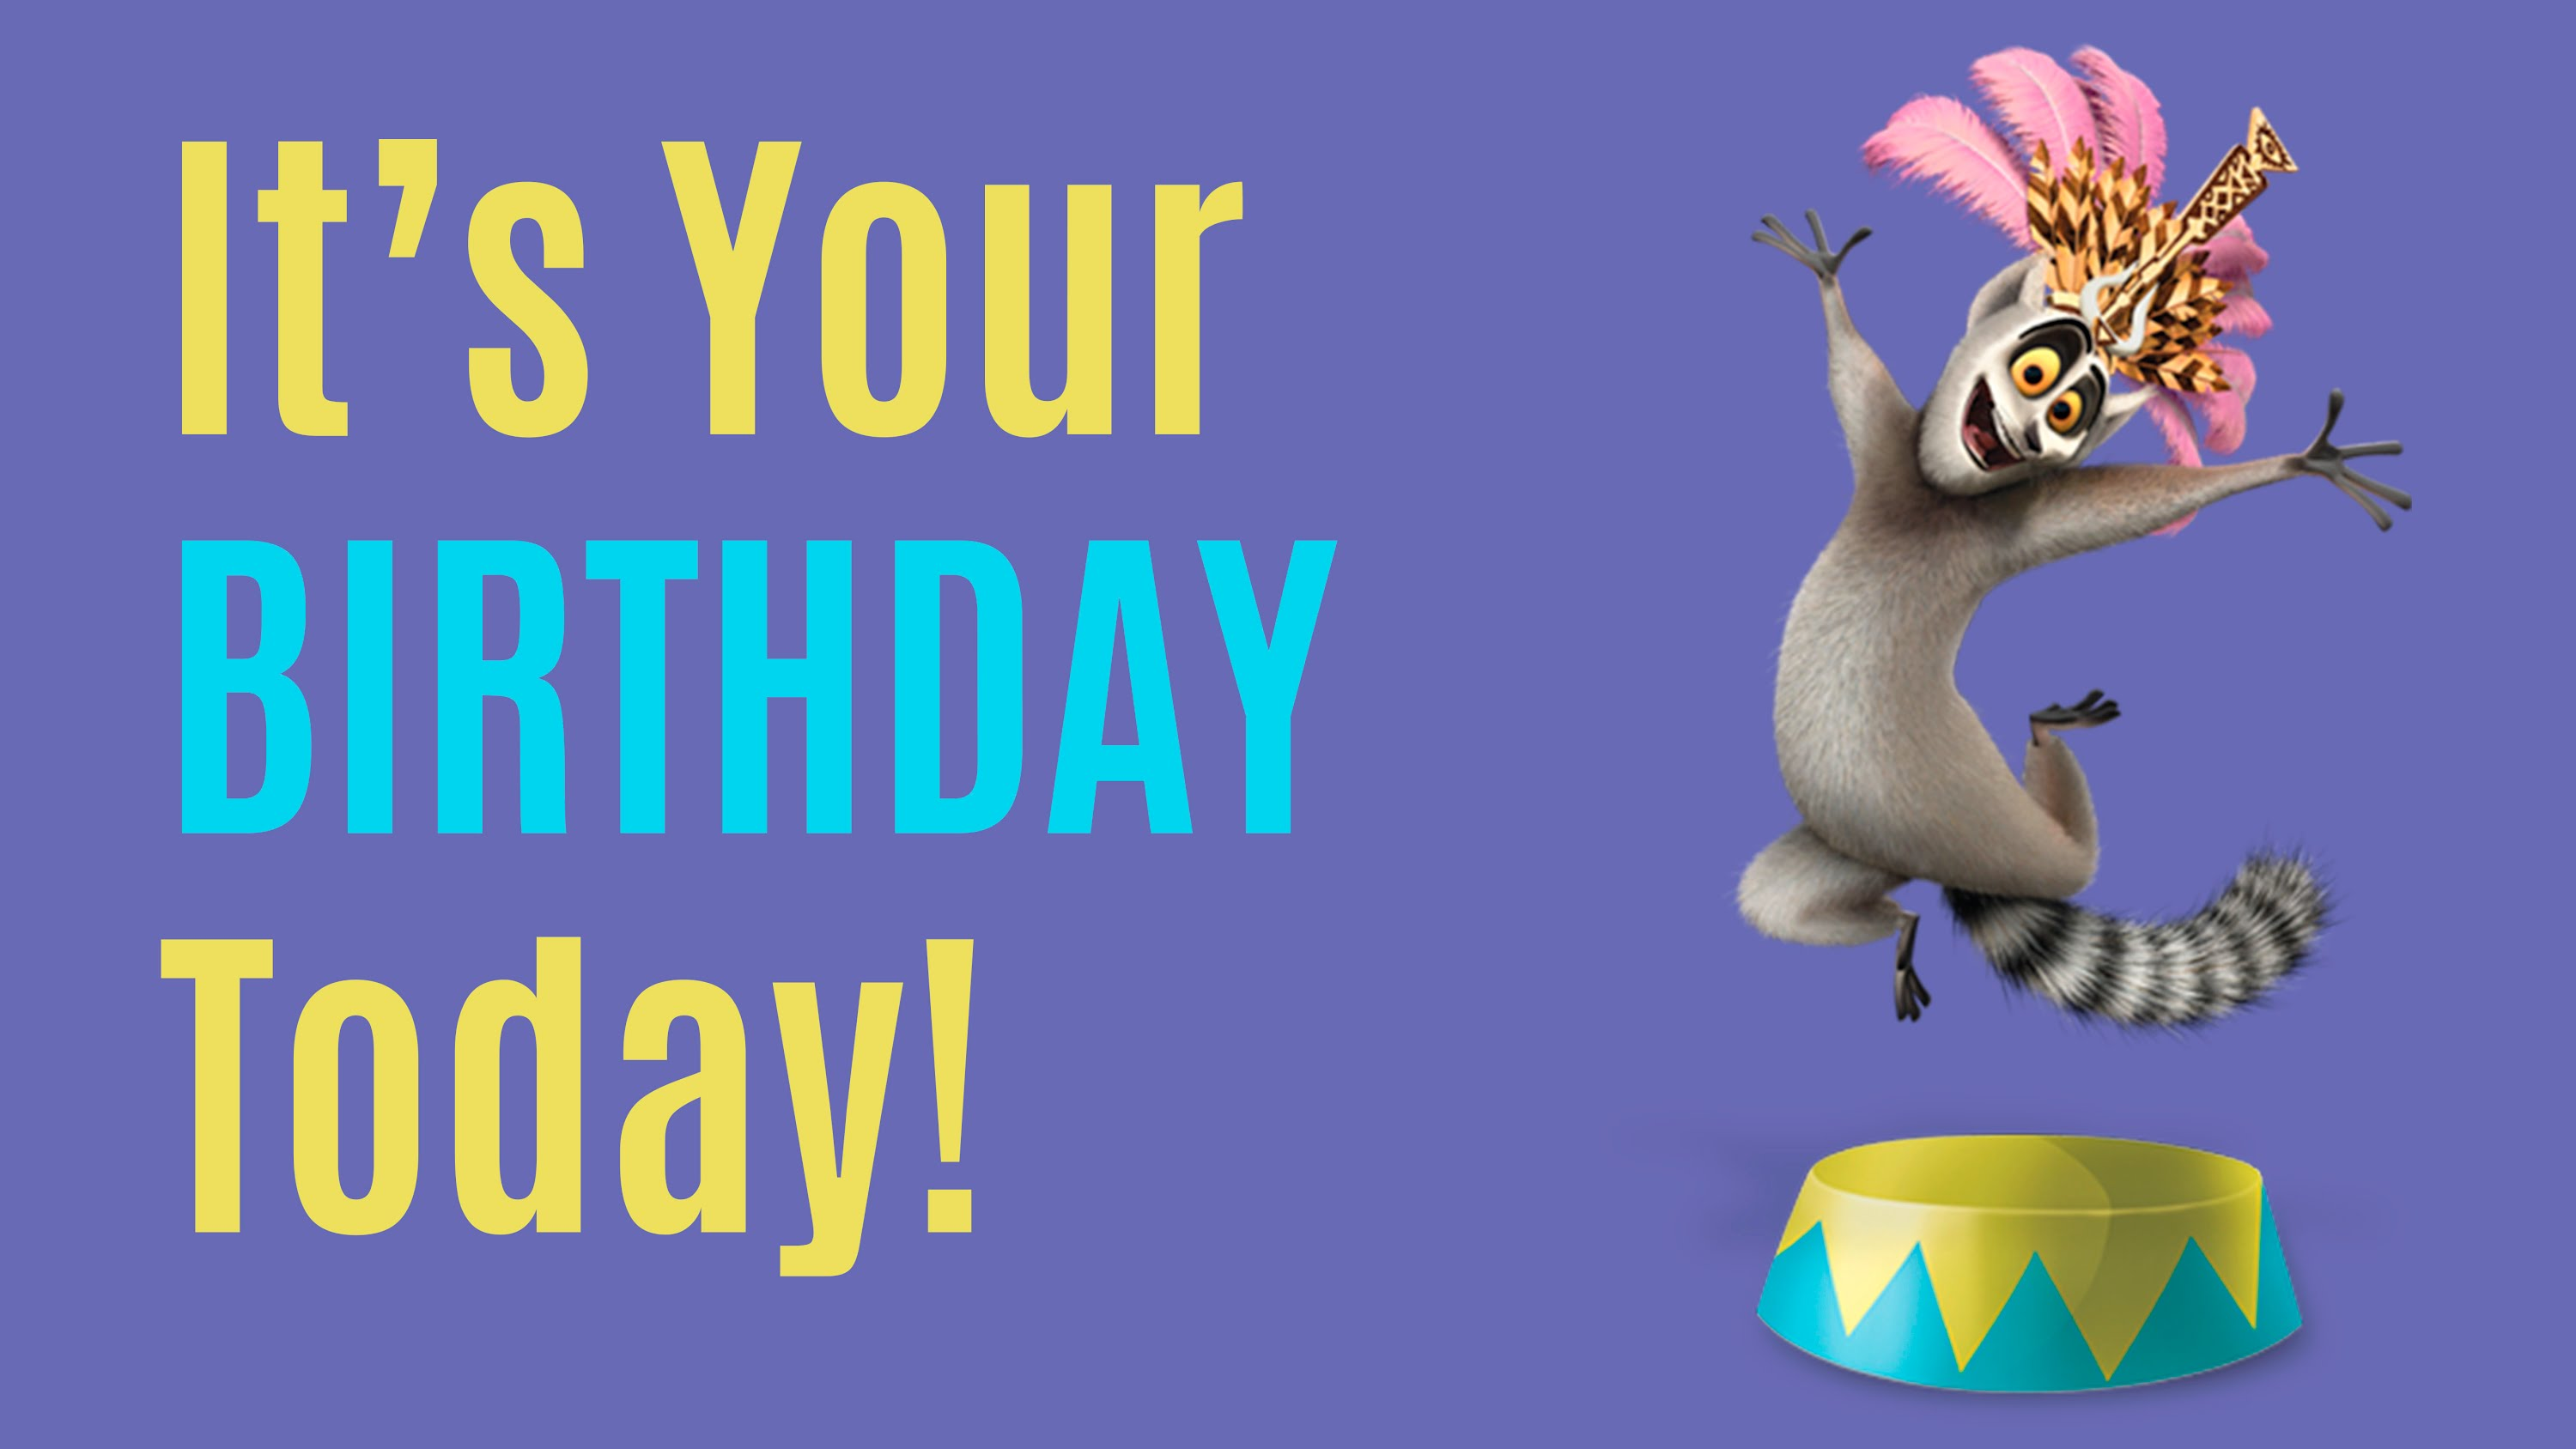 happy birthday message for a friend images ; maxresdefault